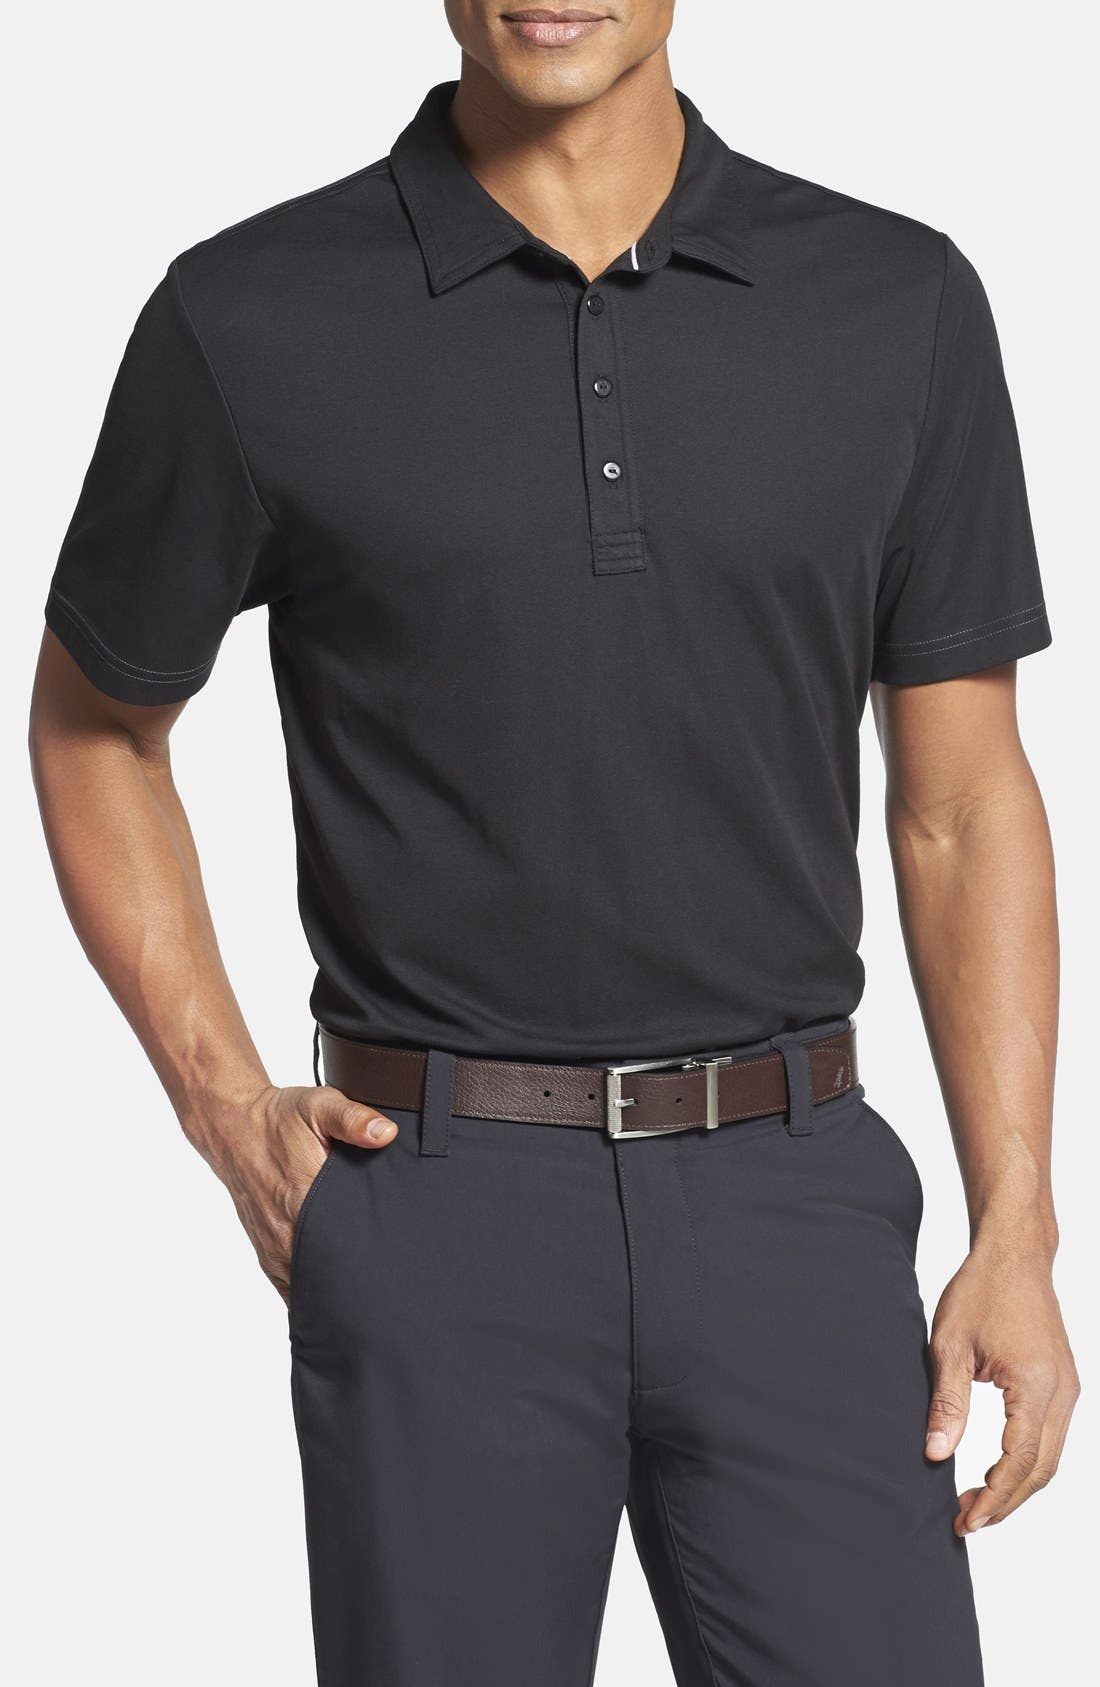 TRAVIS MATHEW 'Crenshaw' Trim Fit Golf Polo, Main, color, 001